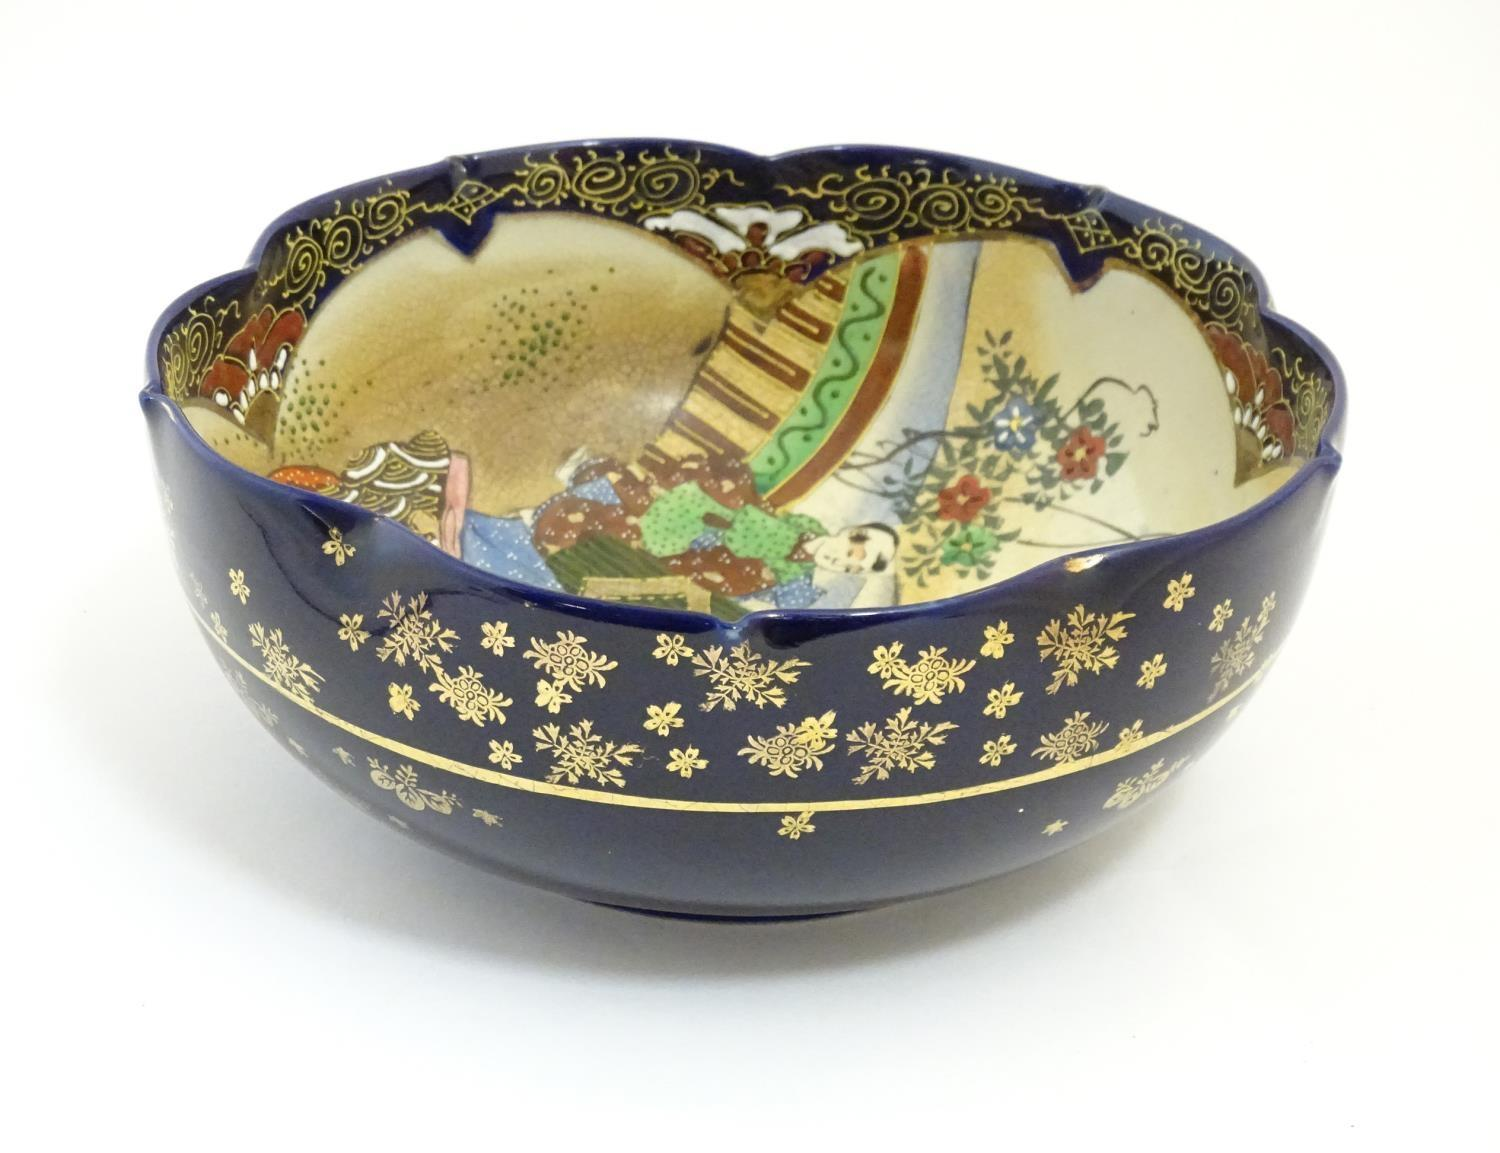 A Japanese export bowl with a lobed rim, decorated with Geisha girls with fans and flowers in a - Image 4 of 7